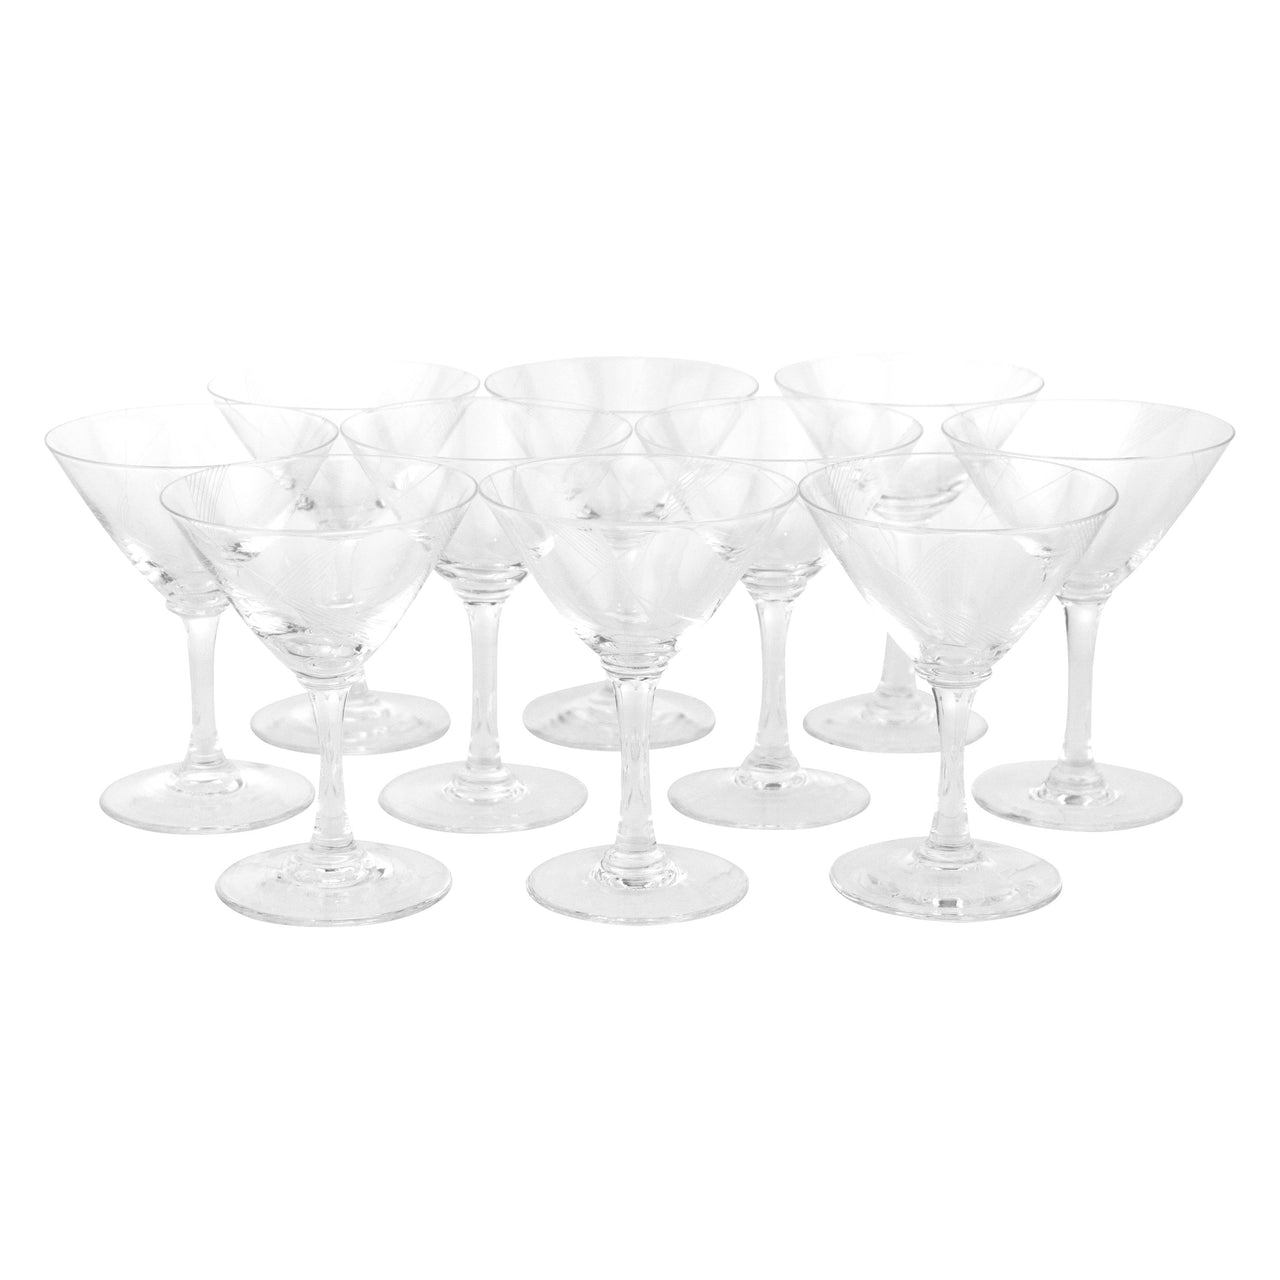 Art Deco Etched Cocktail Glasses | The Hour Vintage Glassware